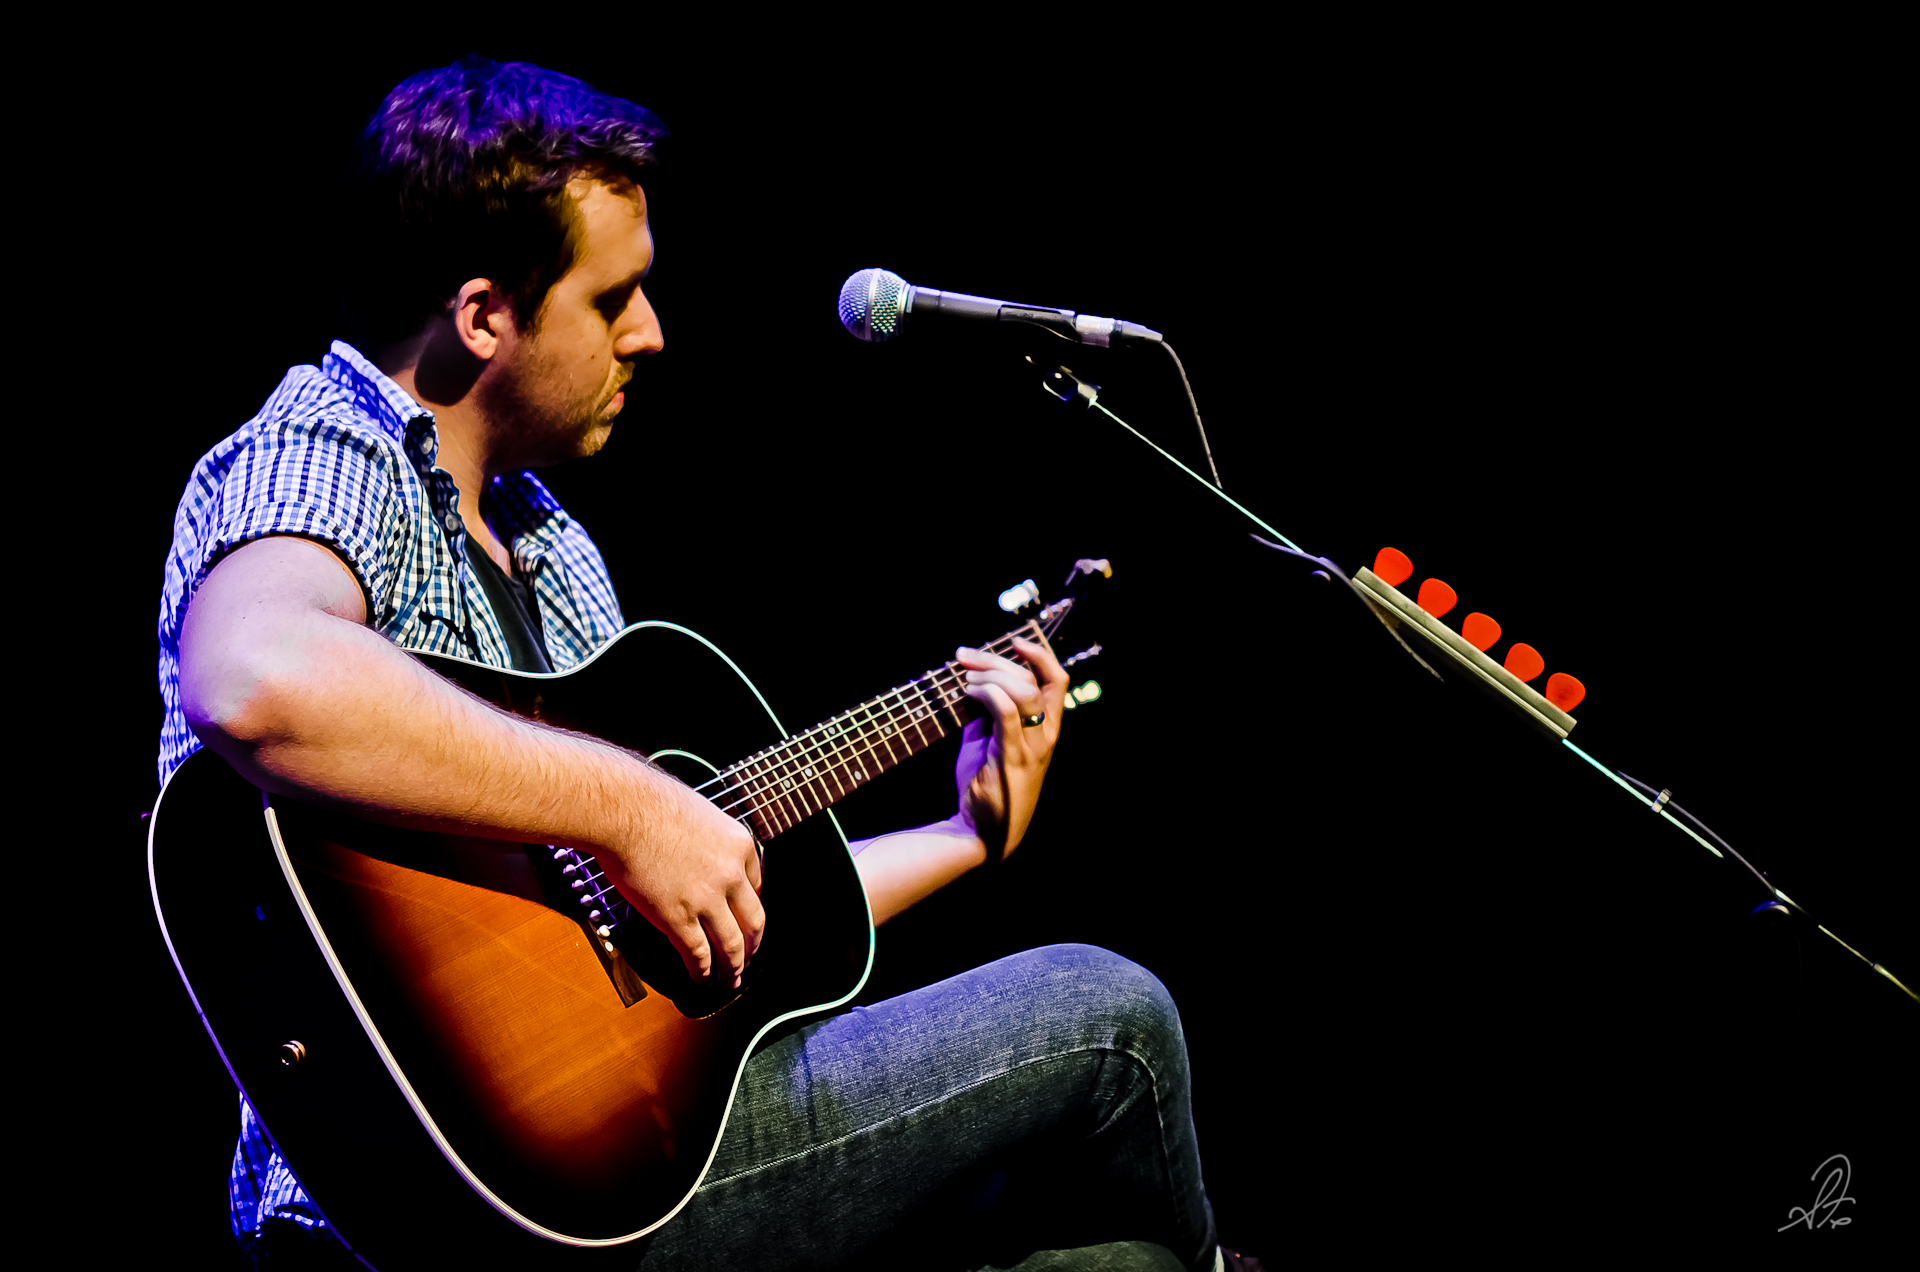 Dustin Adams Playing Guitar Scott Fillmer